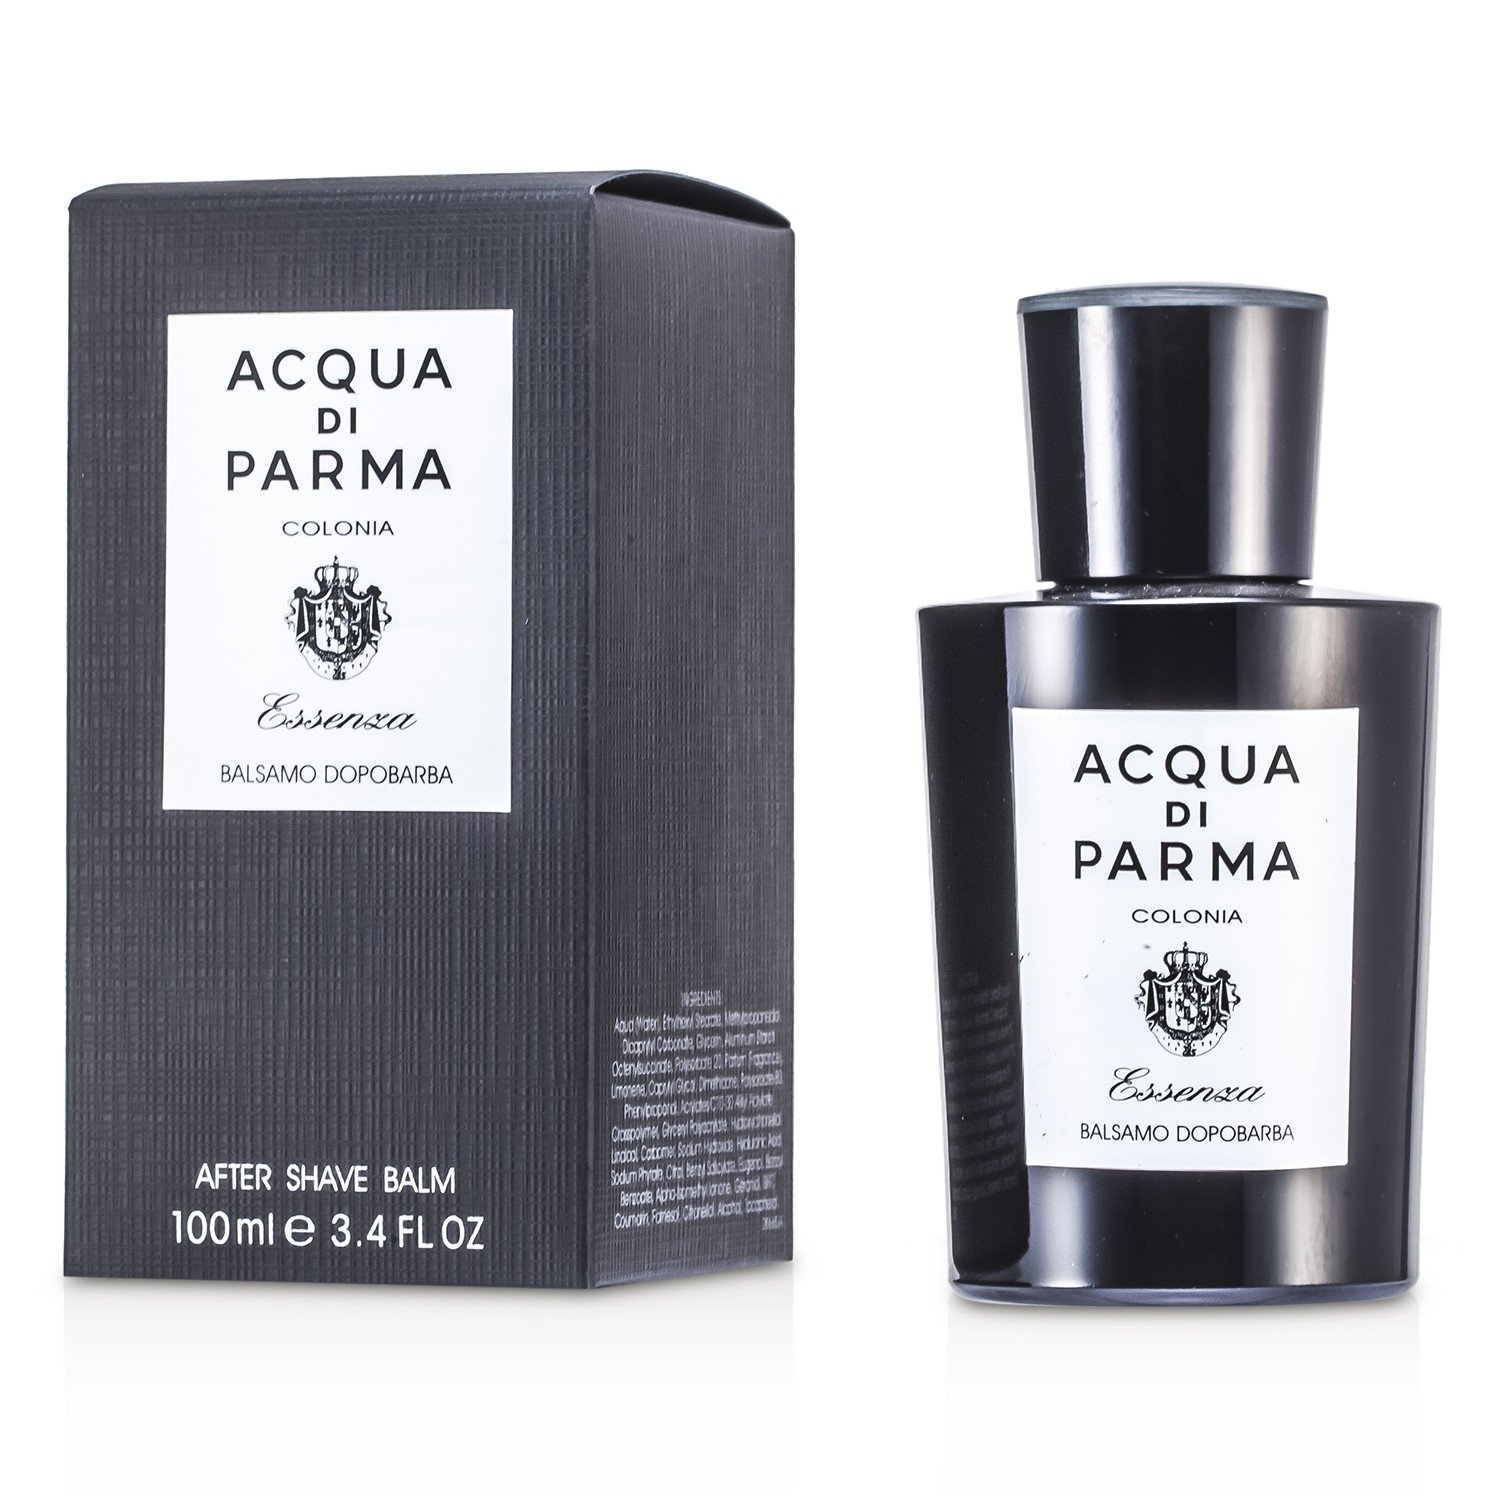 B00JJH2PKS Acqua Di Parma Colonia After Shave Balm, Essenza, 3.4 Ounce 81FqsYKZ-TL